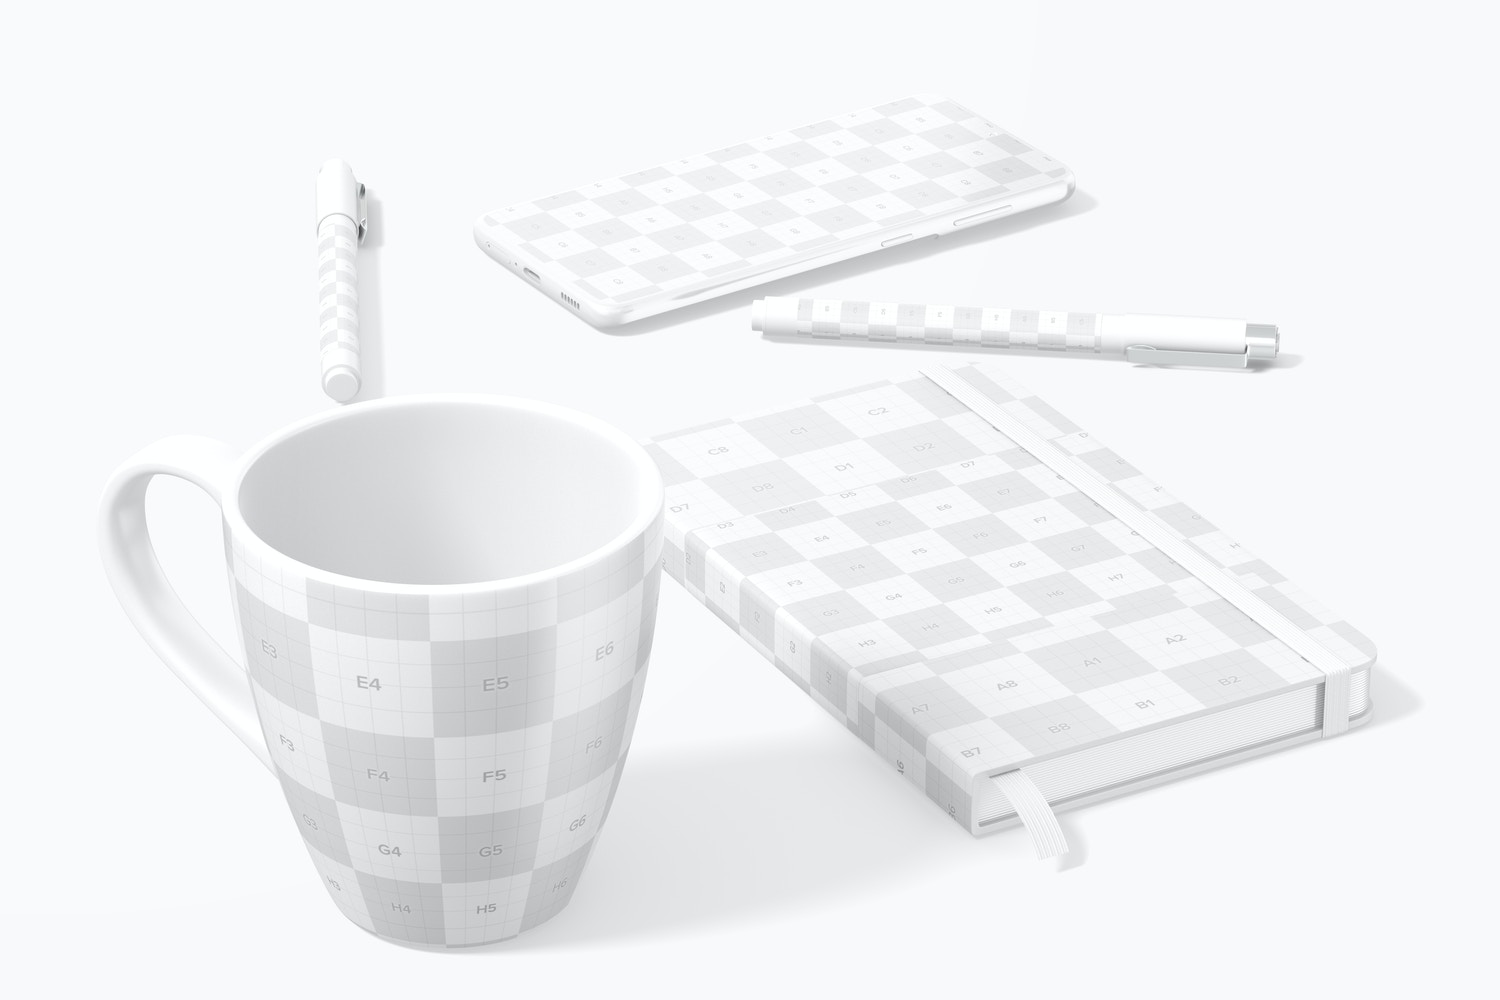 Notebook with Mug Scene Mockup, Front View